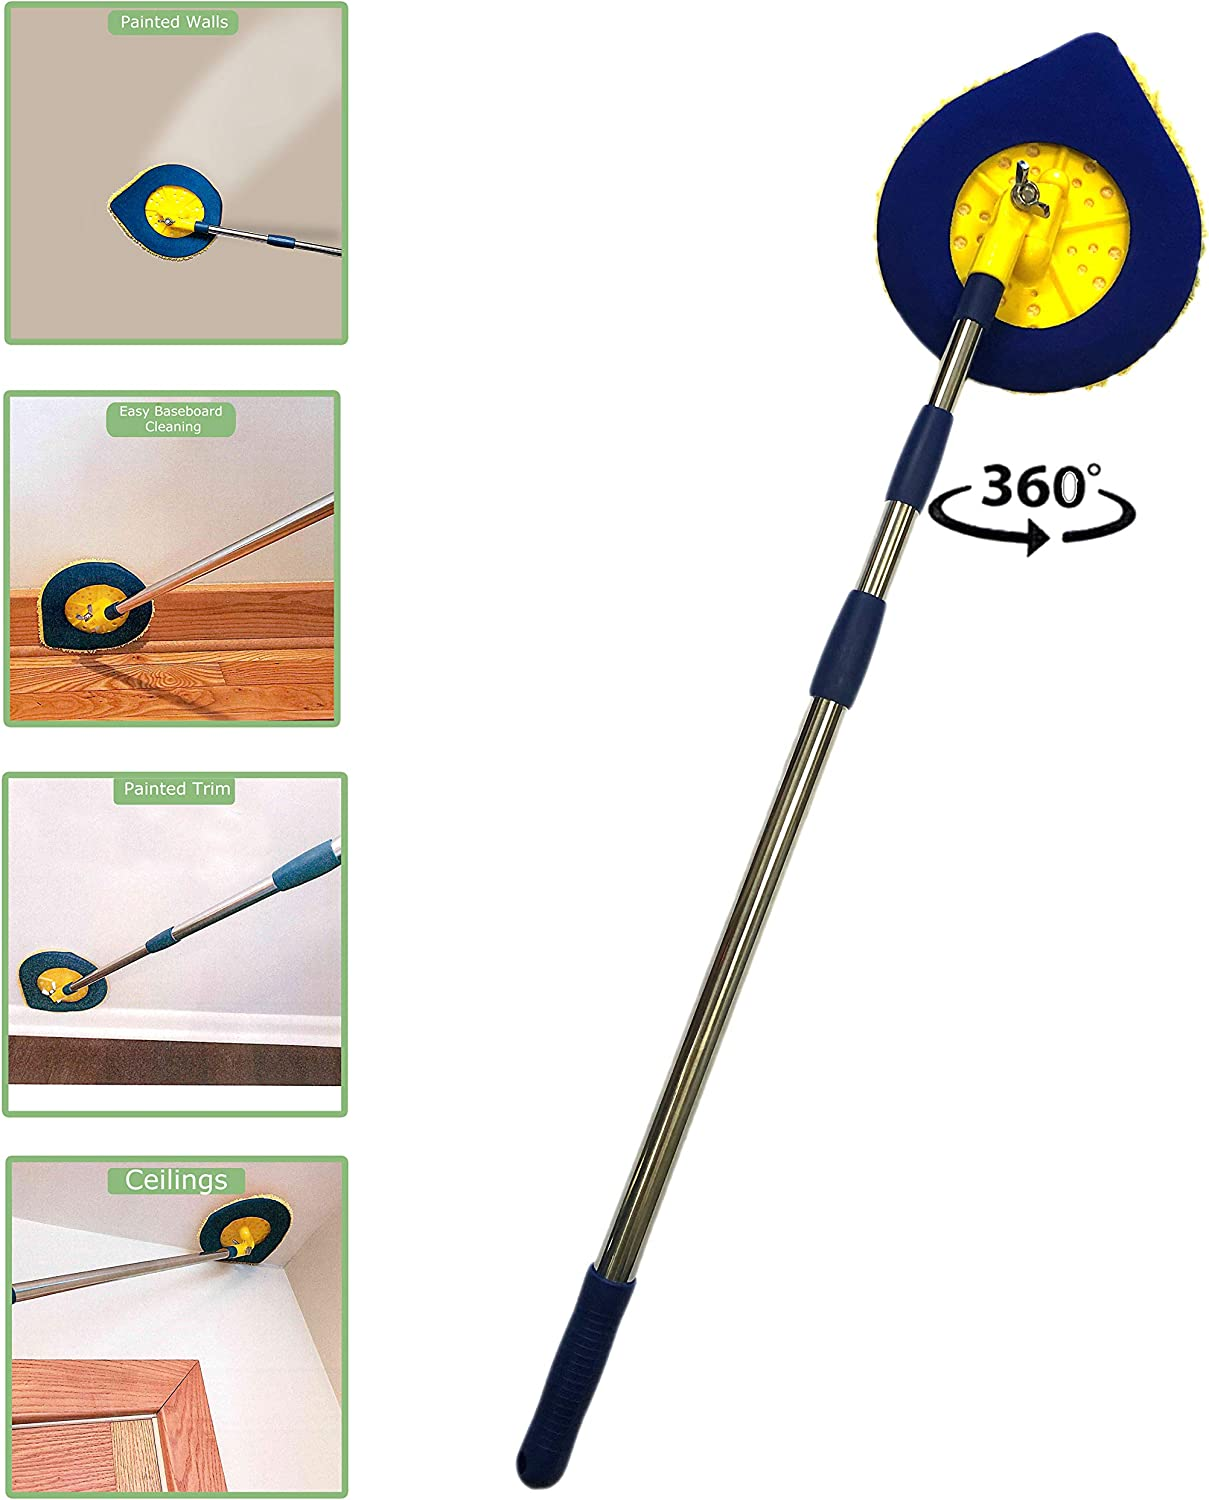 Chomp Long Handle Dust Mop:5 Minute CleanWalls Extendable Wall Washer, Ceiling Cleaner and Baseboard Duster - Telescoping Dry Dust / Wet Wash Cleaning Mop with Washable Microfiber Pad